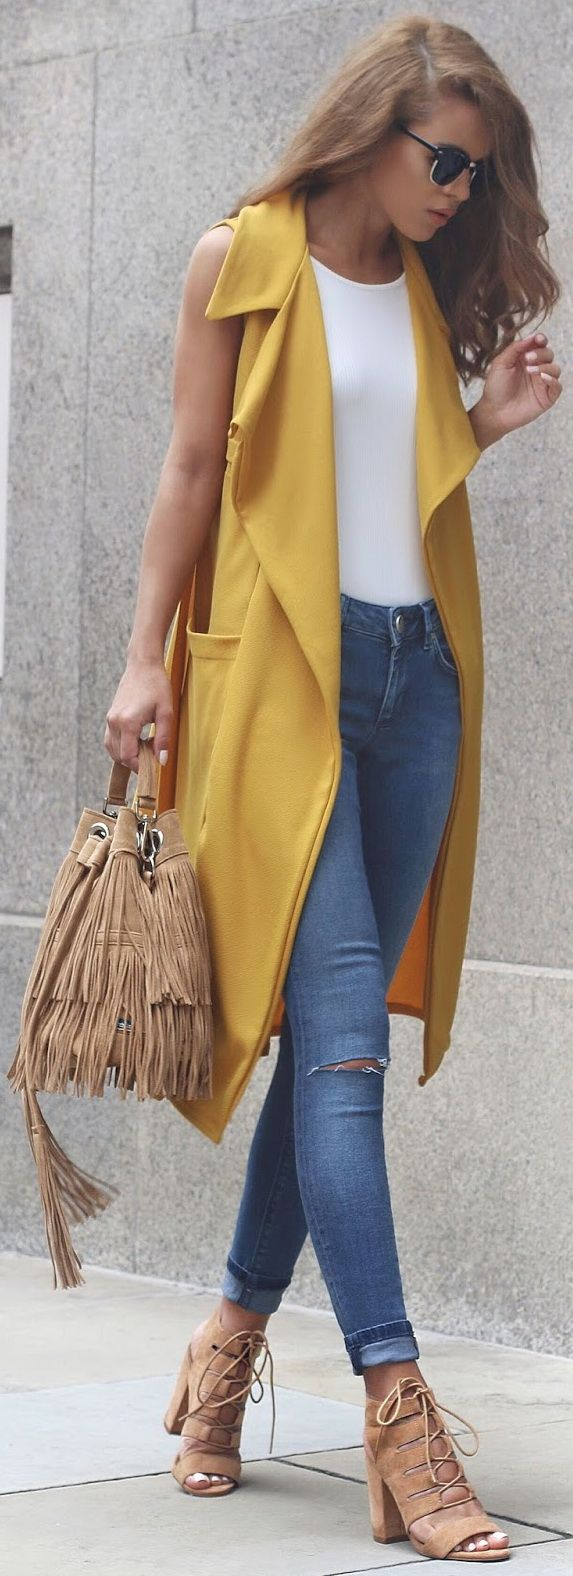 Loving mustard? Dare to reach for the duster. A mustard duster like this one adds the perfect amount of color to a simple look without being overbearing.